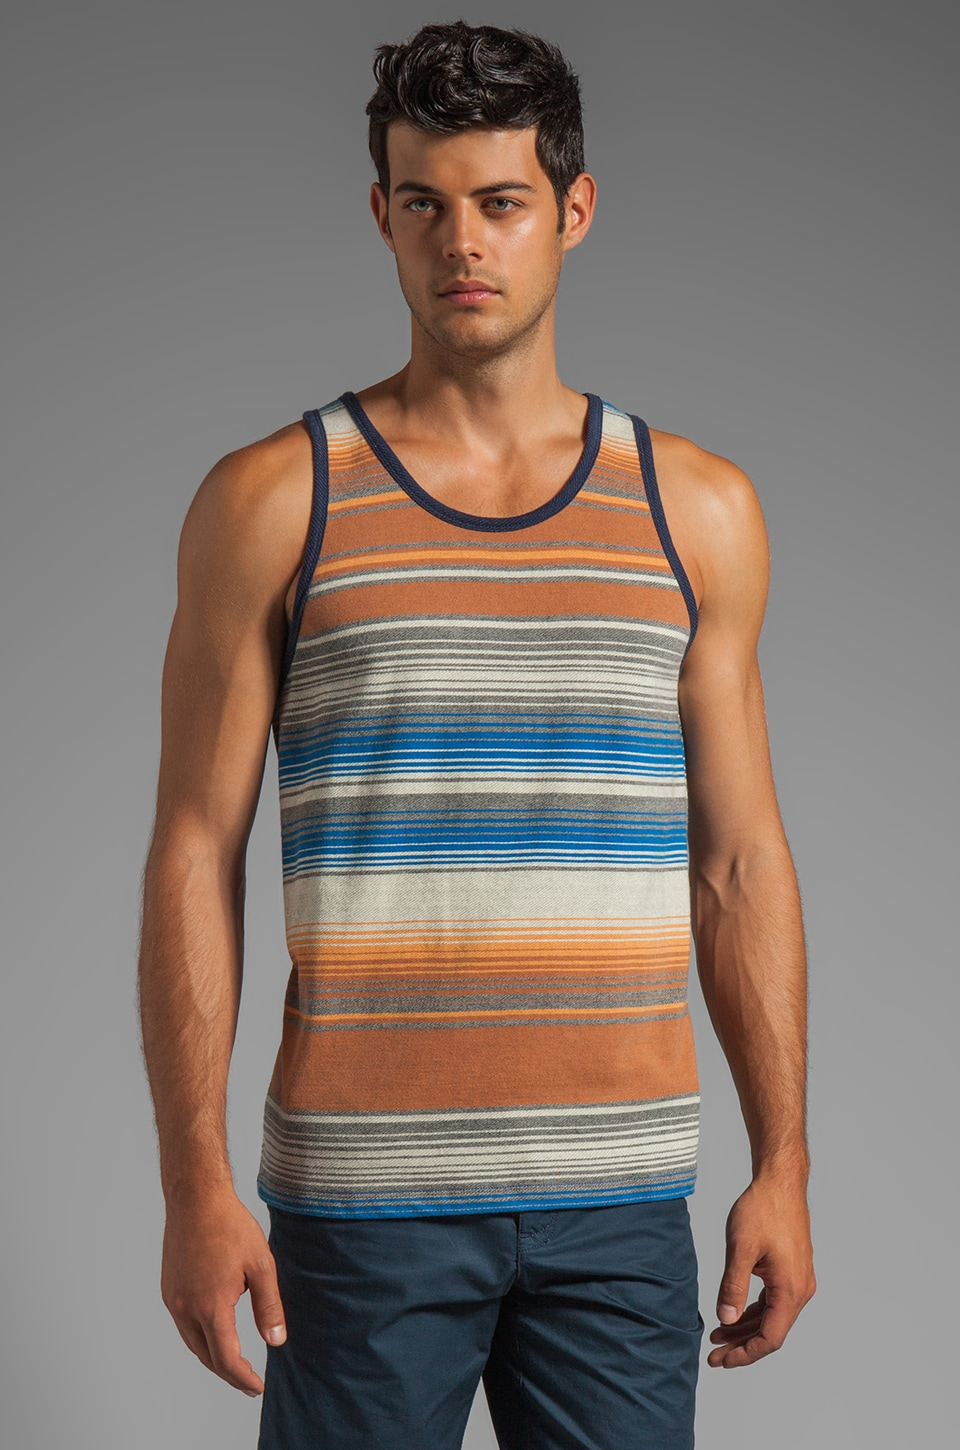 Obey Tulum Tank in Pecan Brown